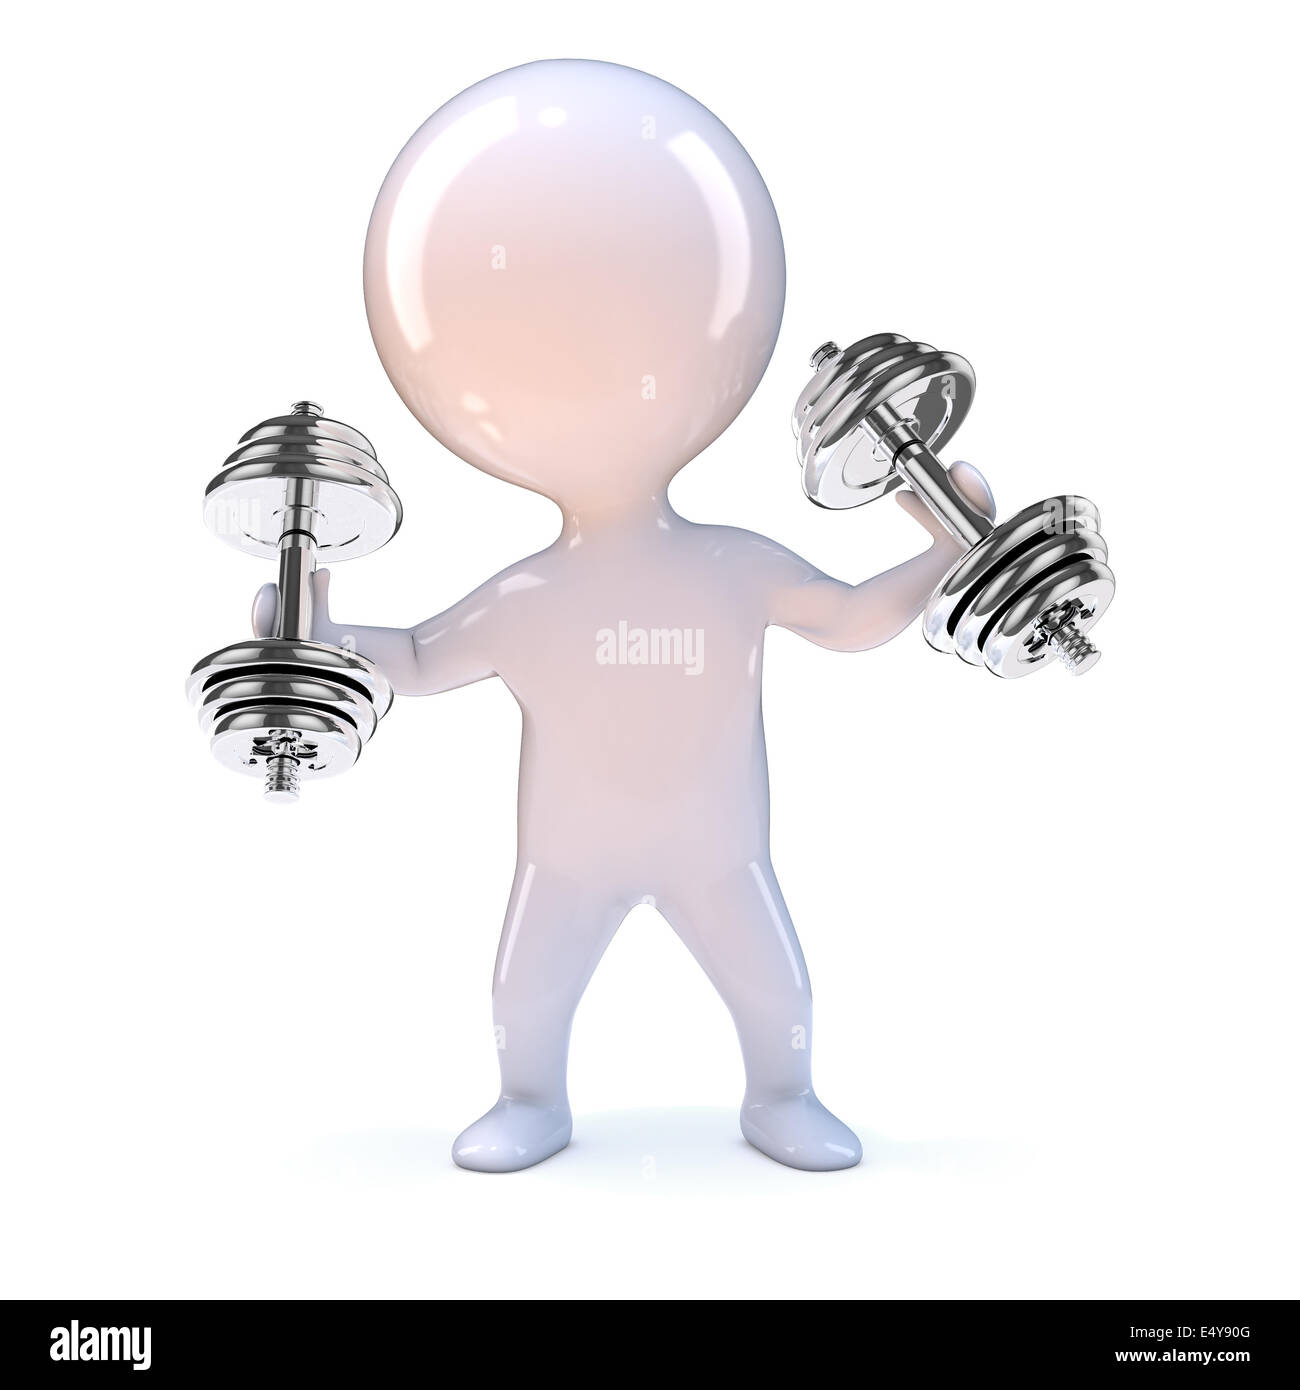 2be315d30cf 3d render of a little man exercising with weights - Stock Image